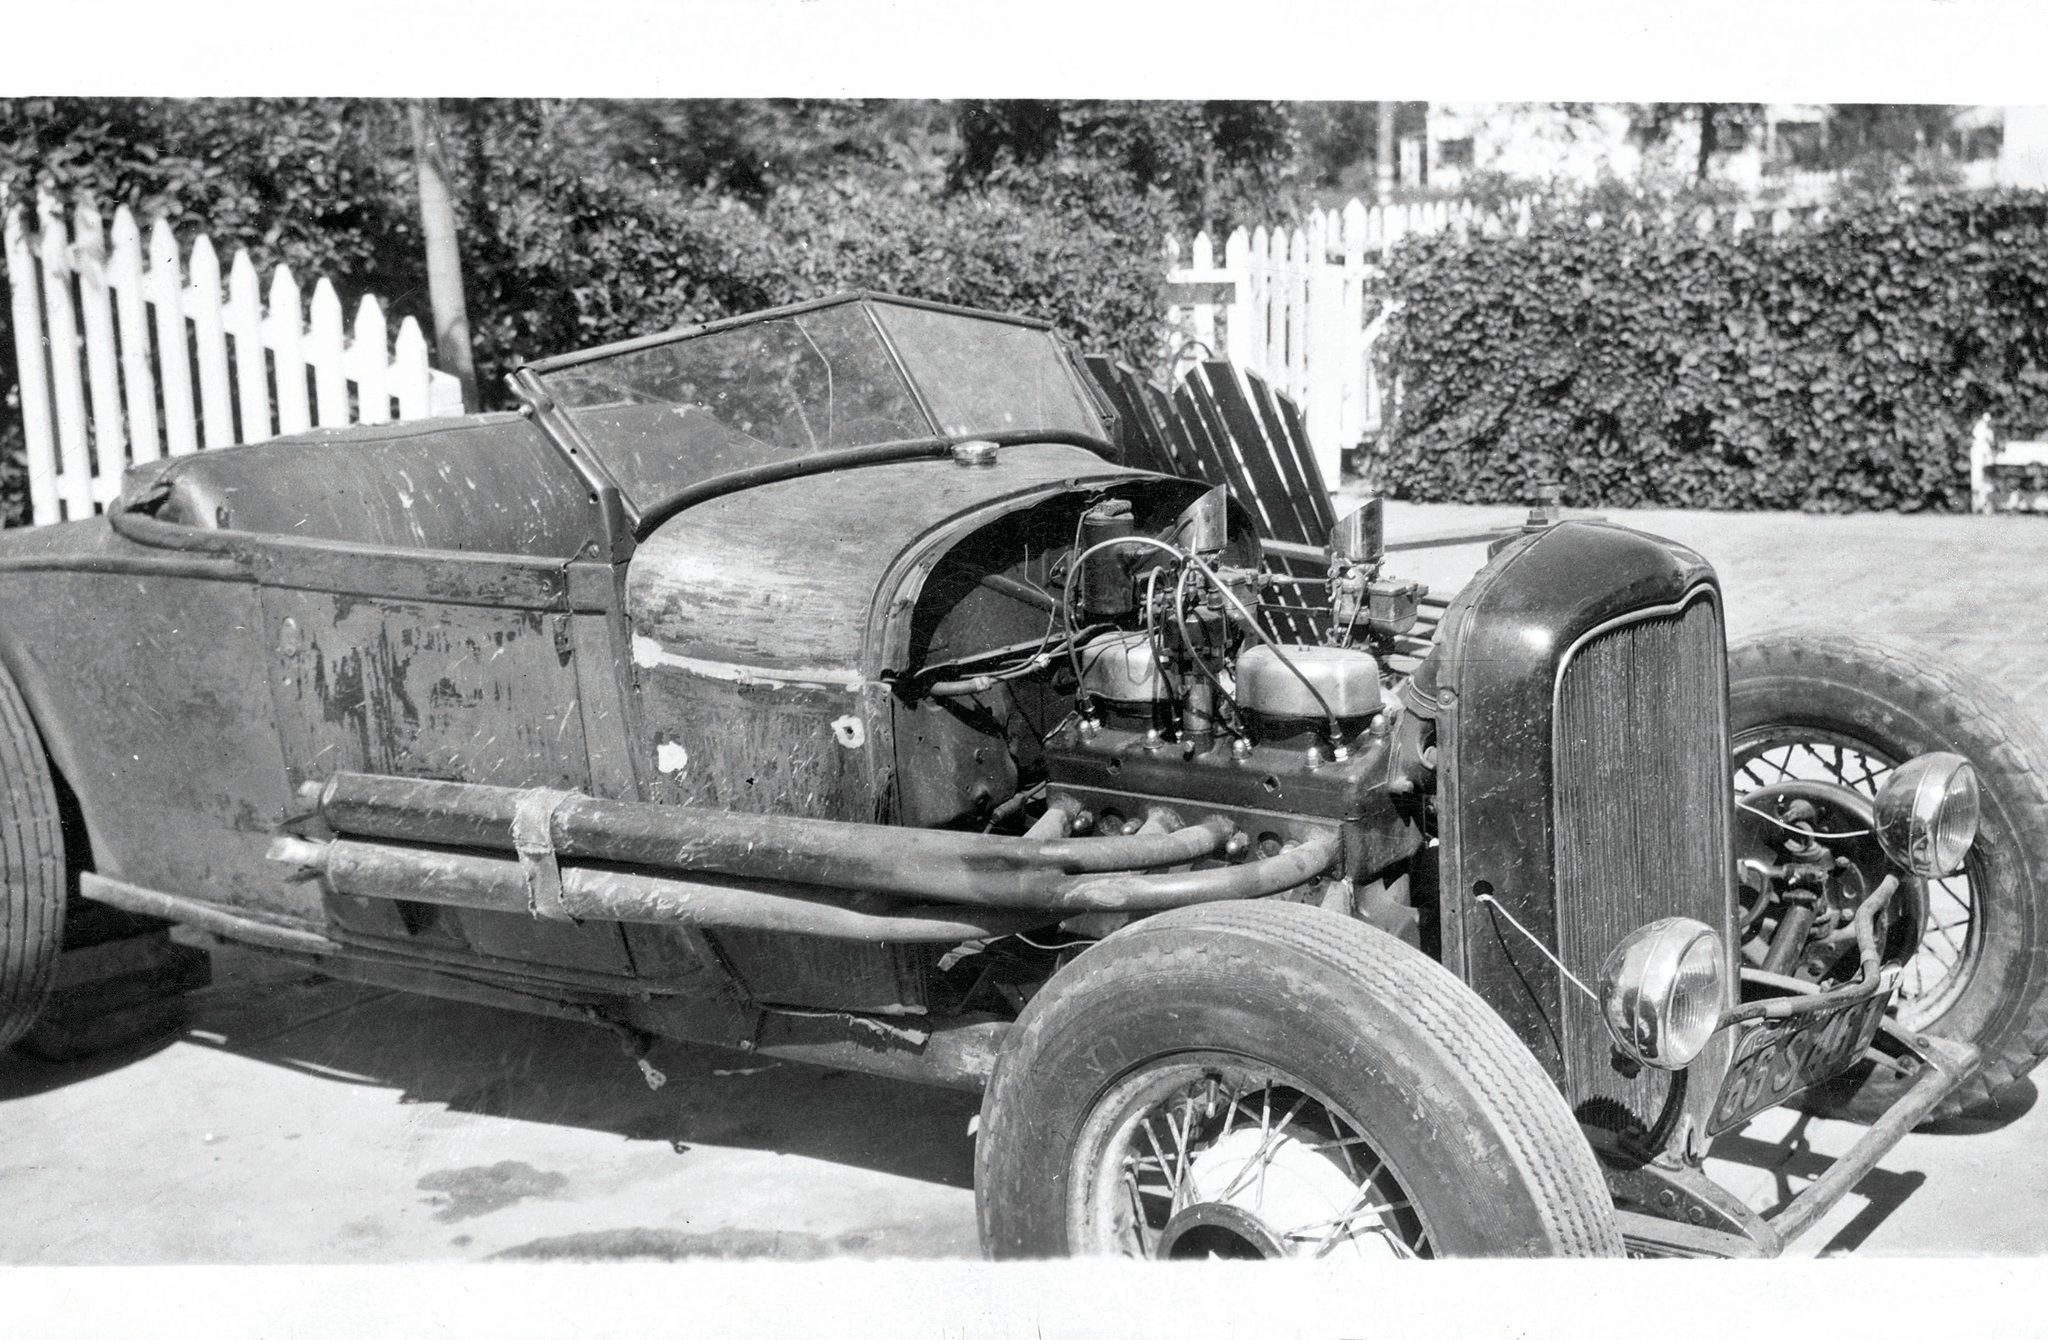 This is how Harold's Model A looked when he bought it in the mid-'40s—unpainted, fenderless, but with a Riley two-port conversion on the banger mill.